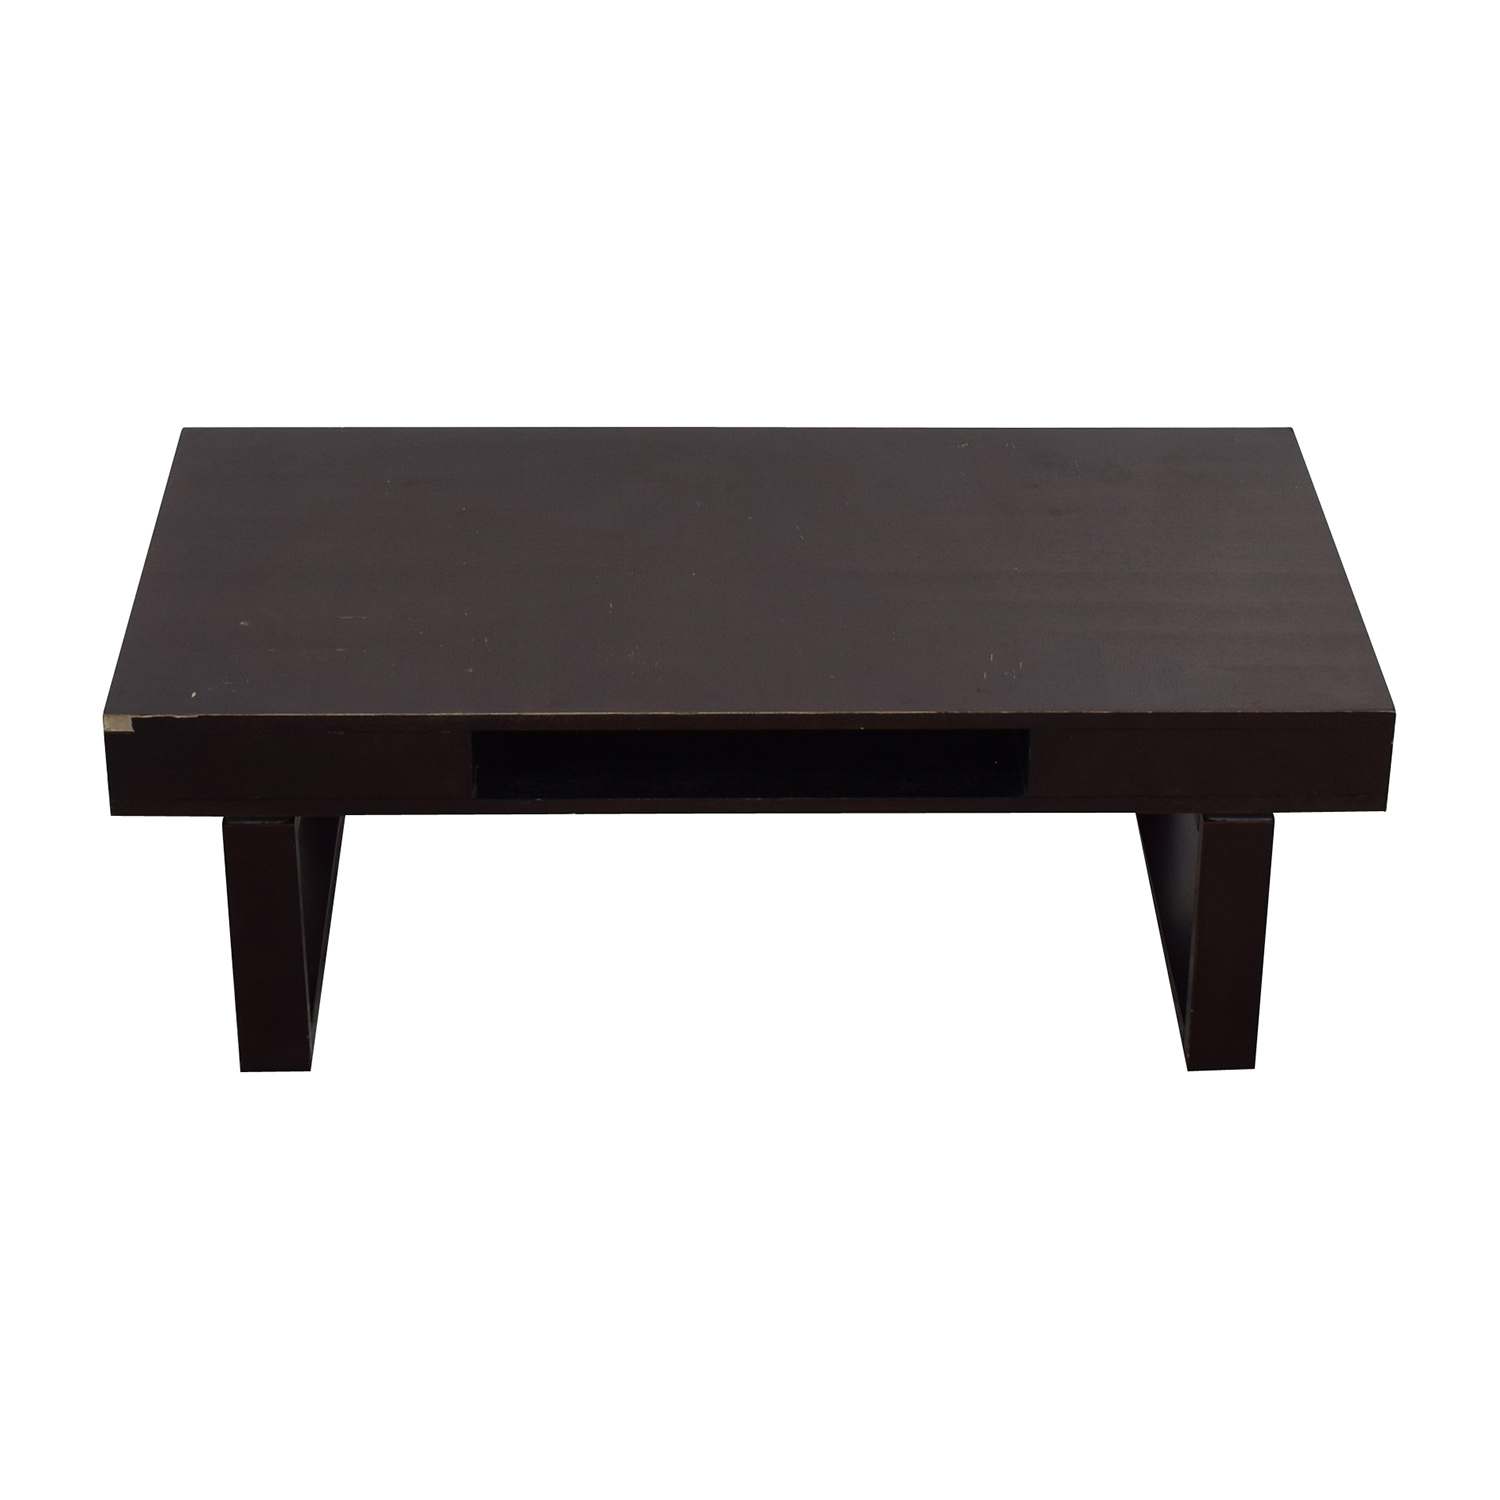 Brown Wood Coffee Table with Side Drawers